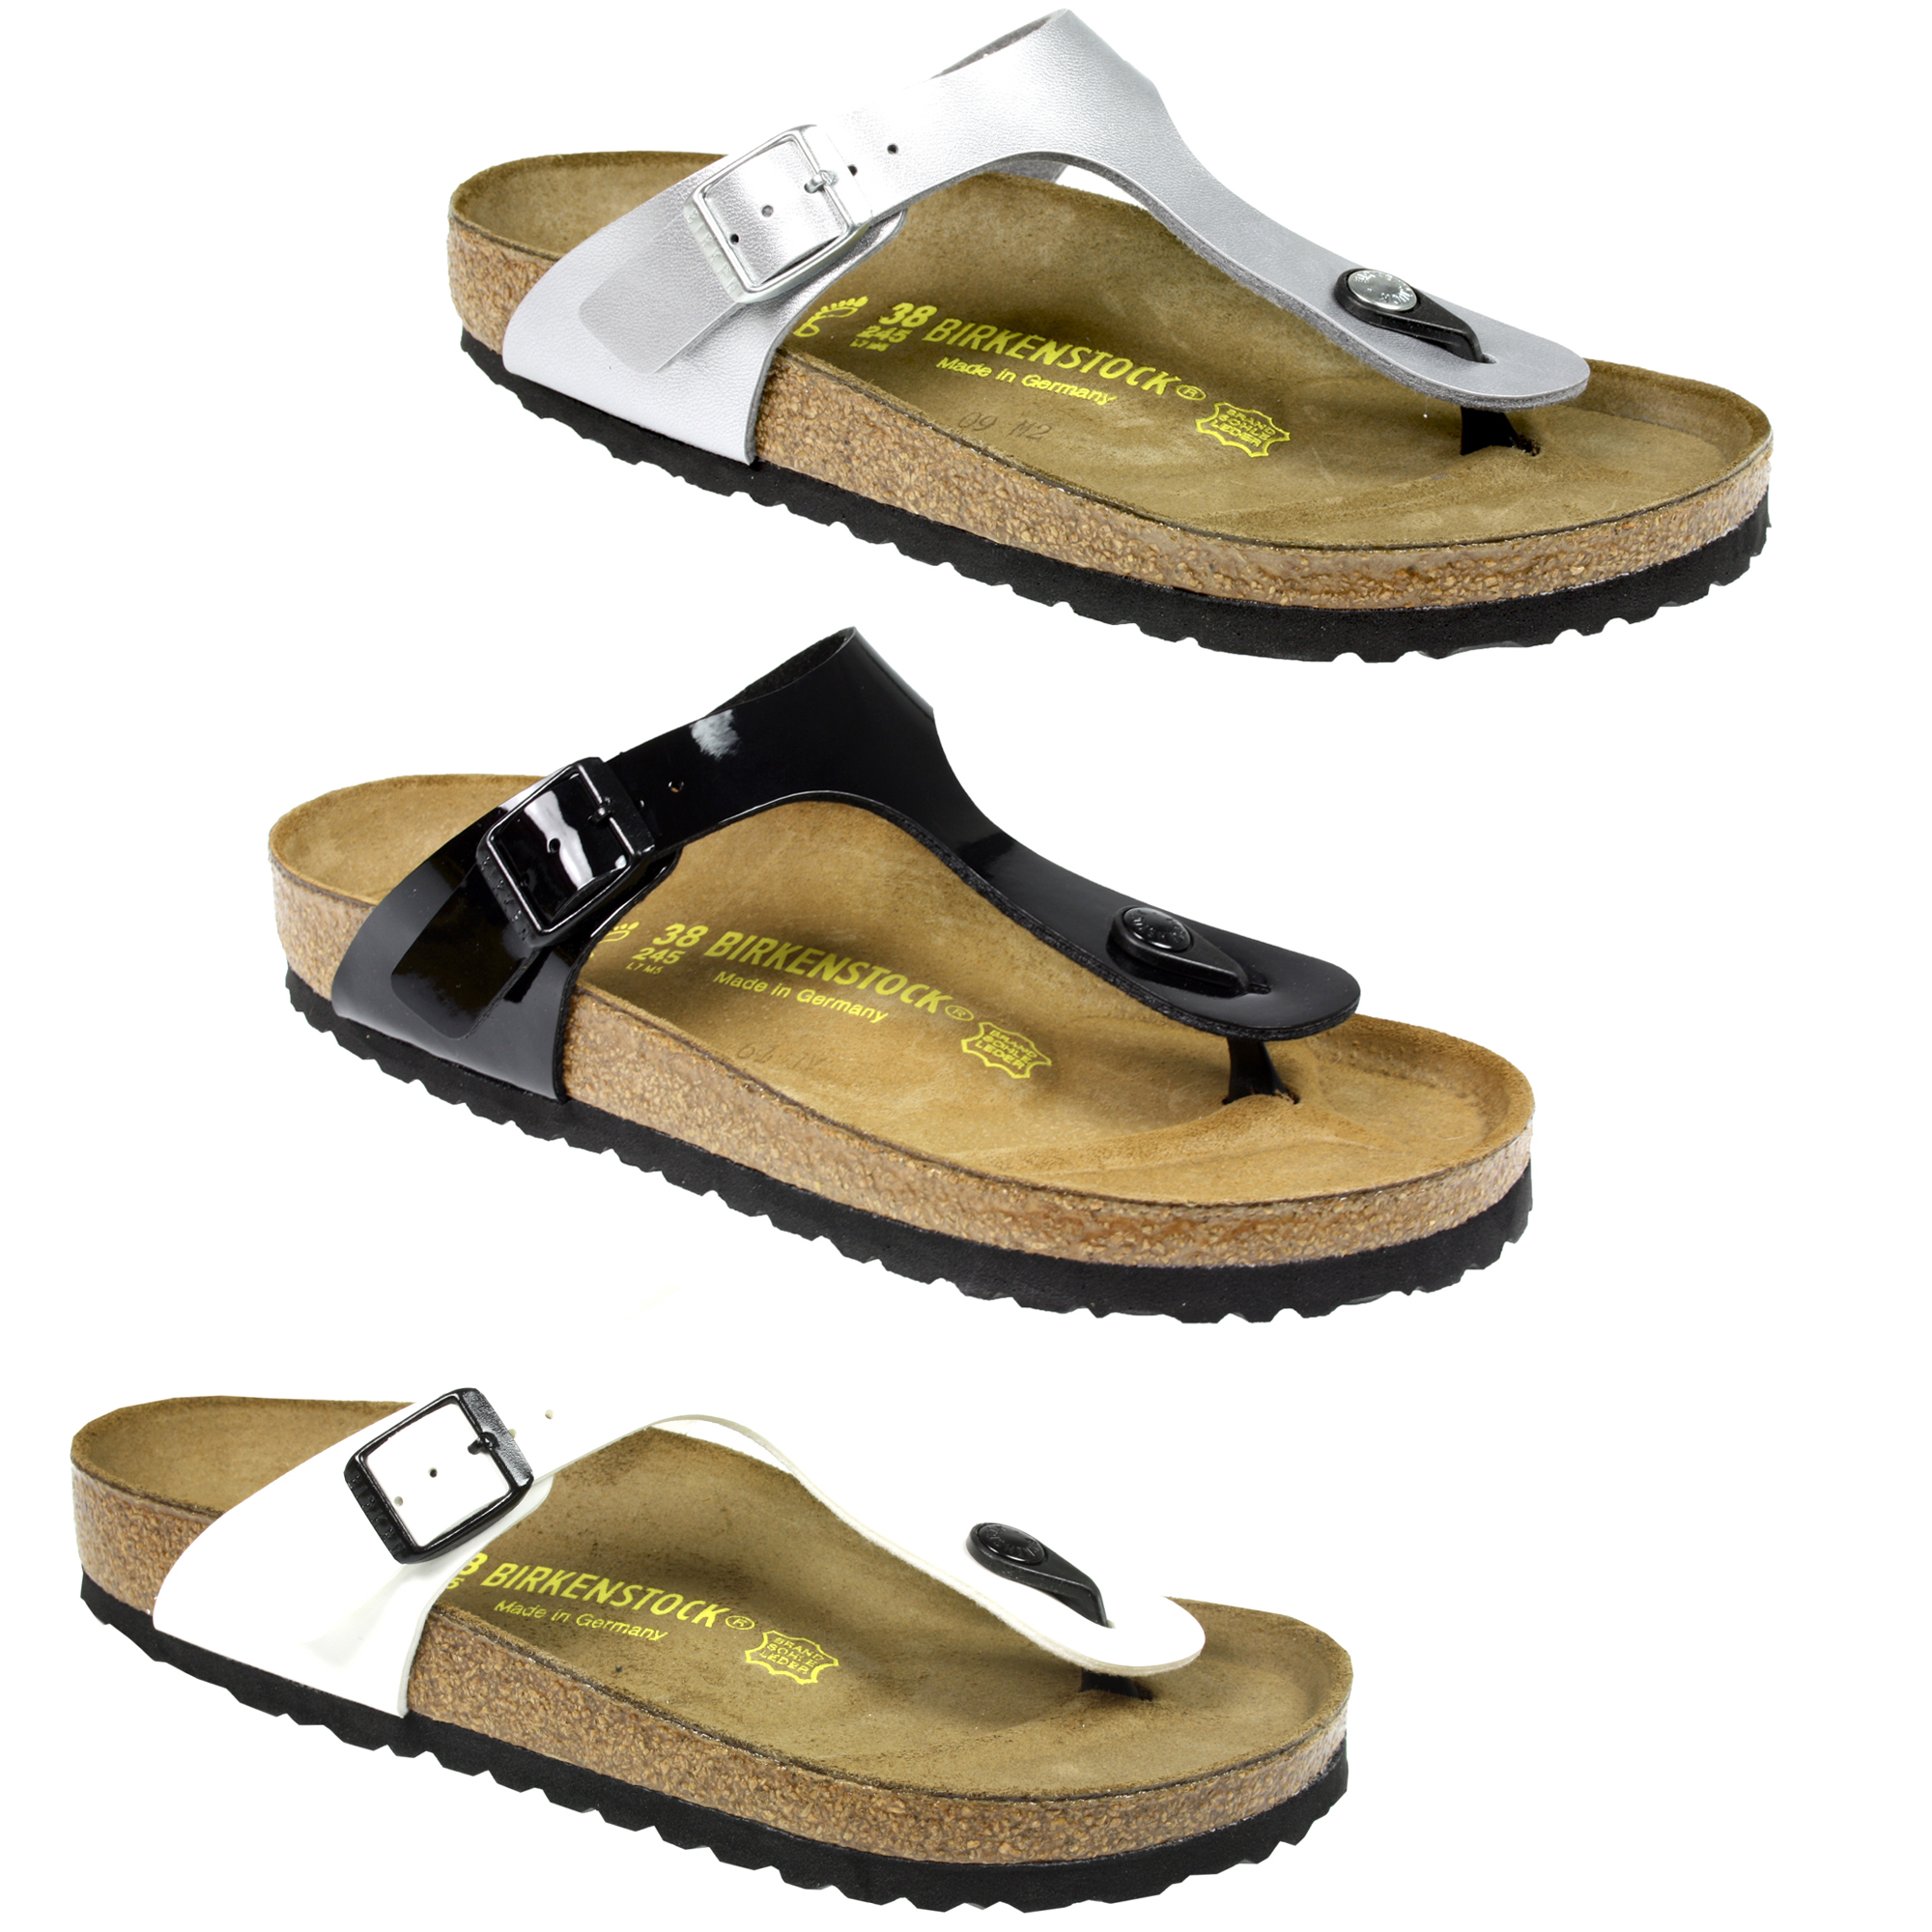 WOMENS LADIES BIRKENSTOCK GIZEH FLAT MOULDED FOOTBED SUMMER BEACH SANDALS SIZE